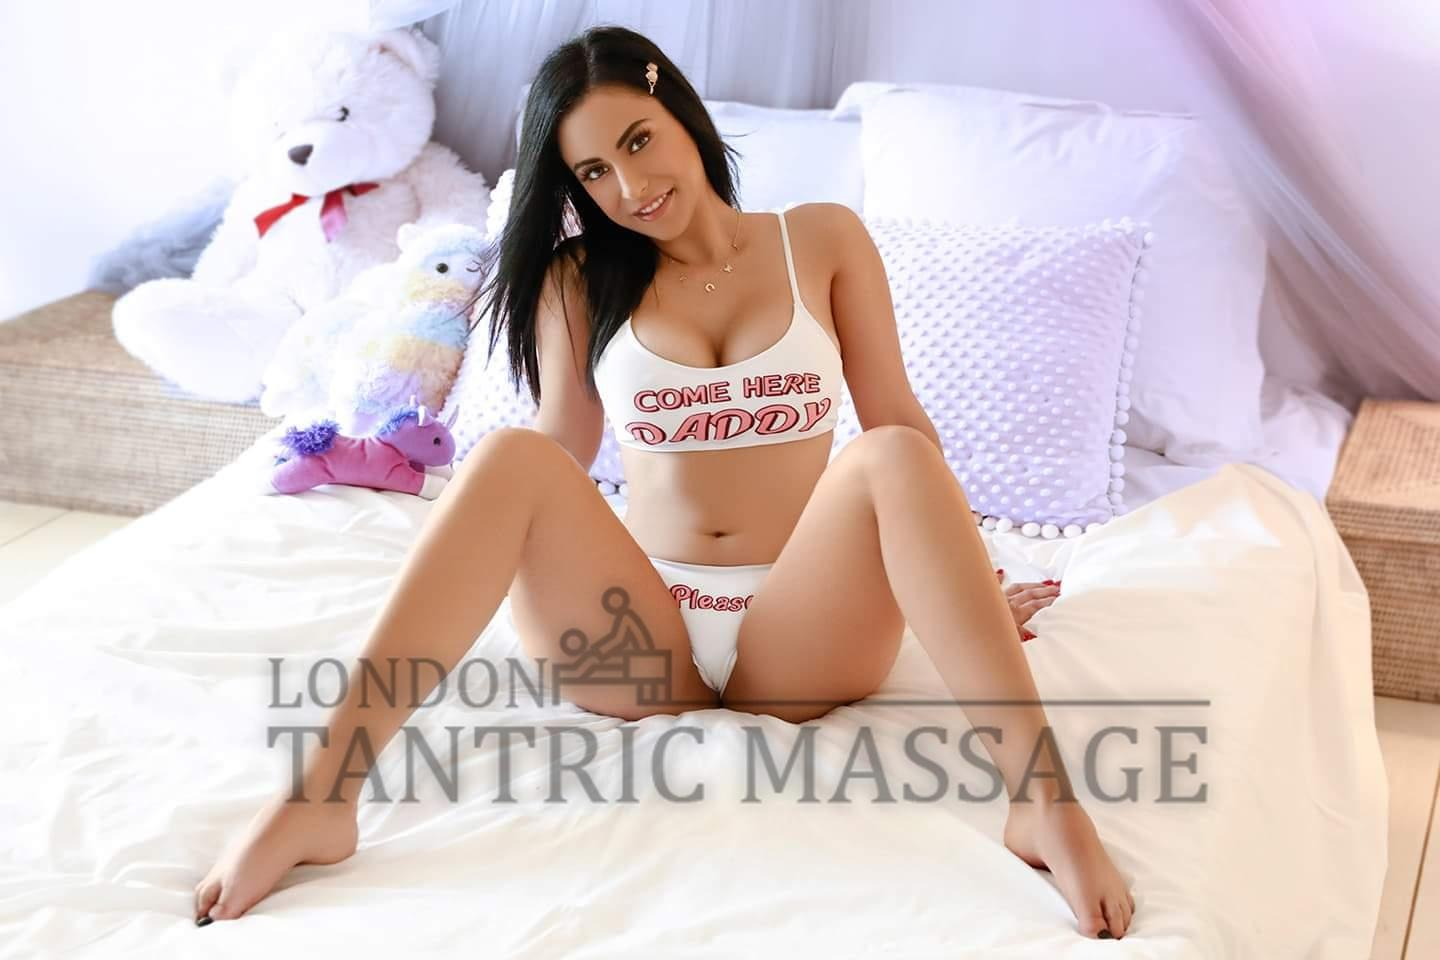 Toria from Angels of London